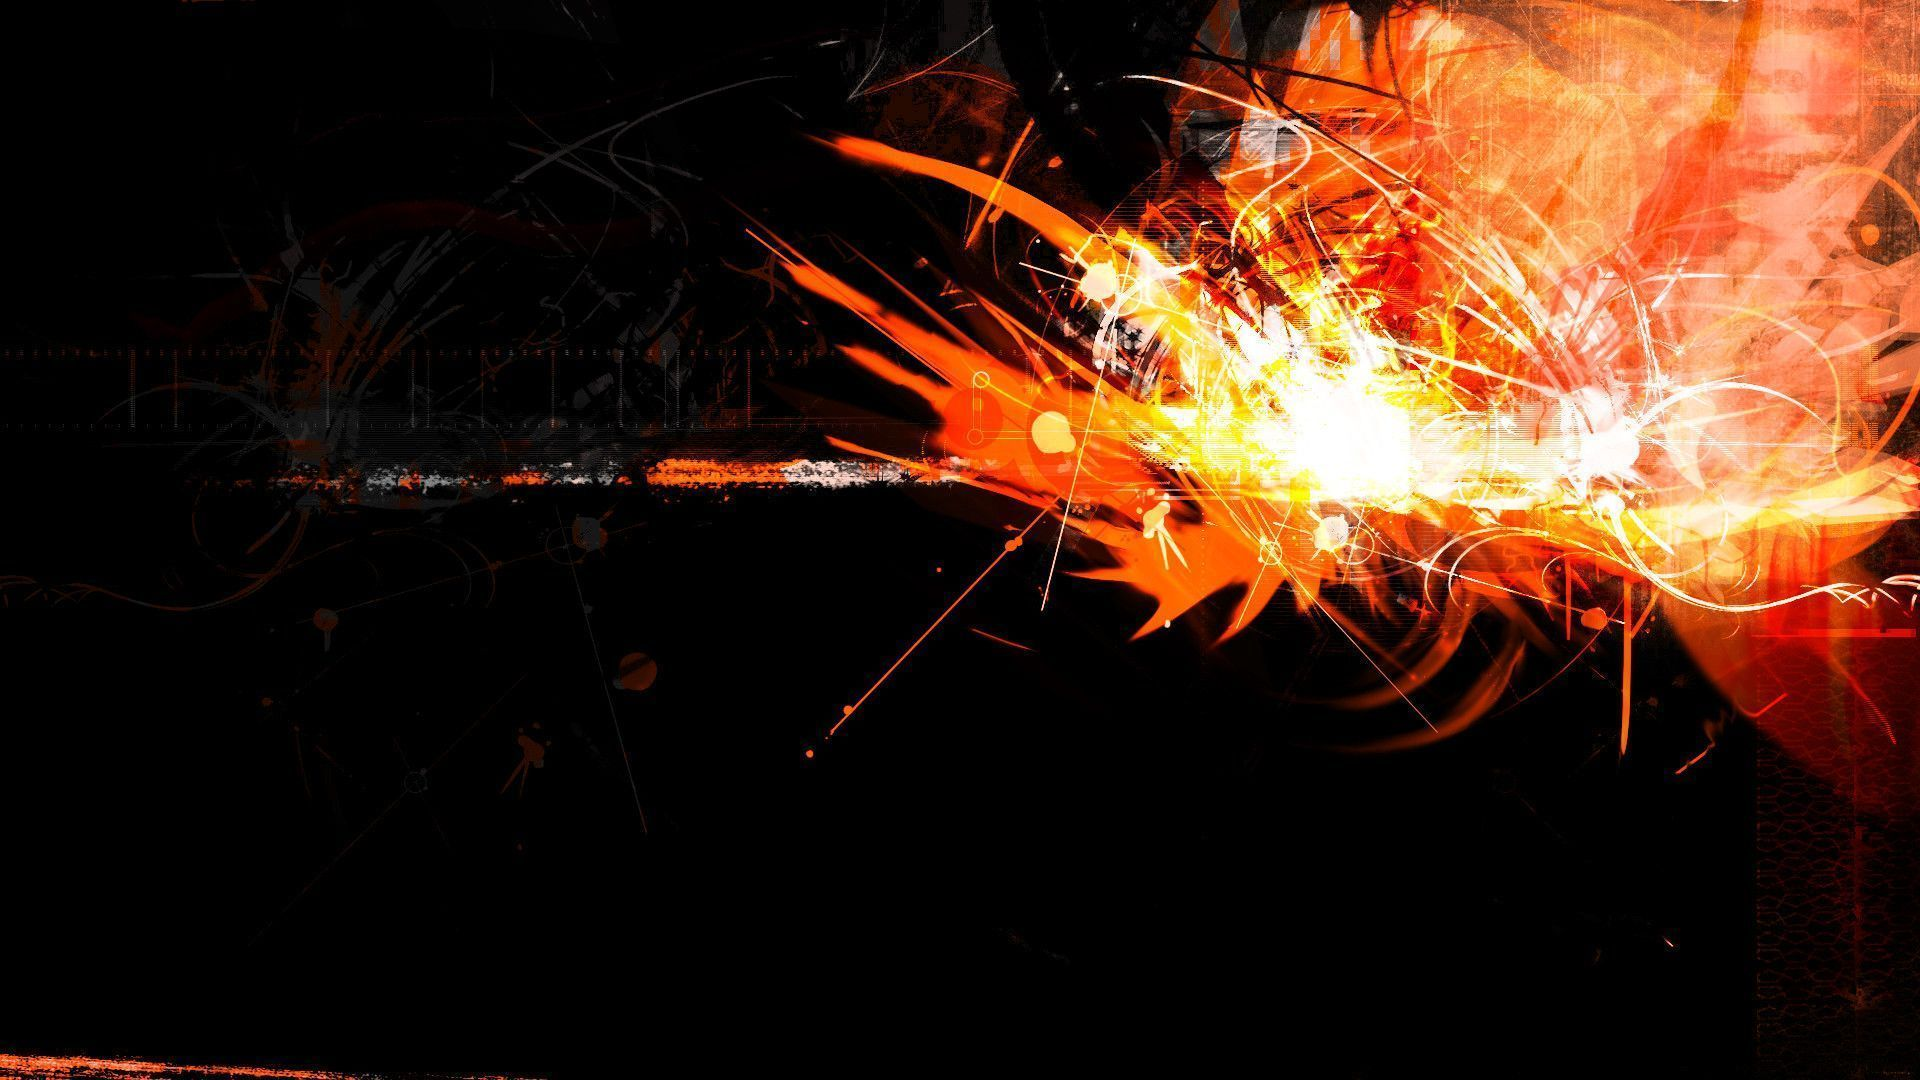 """Download the following Orange Abstract Wallpaper 27684 by clicking the orange button positioned underneath the """"Download Wallpaper"""" section."""